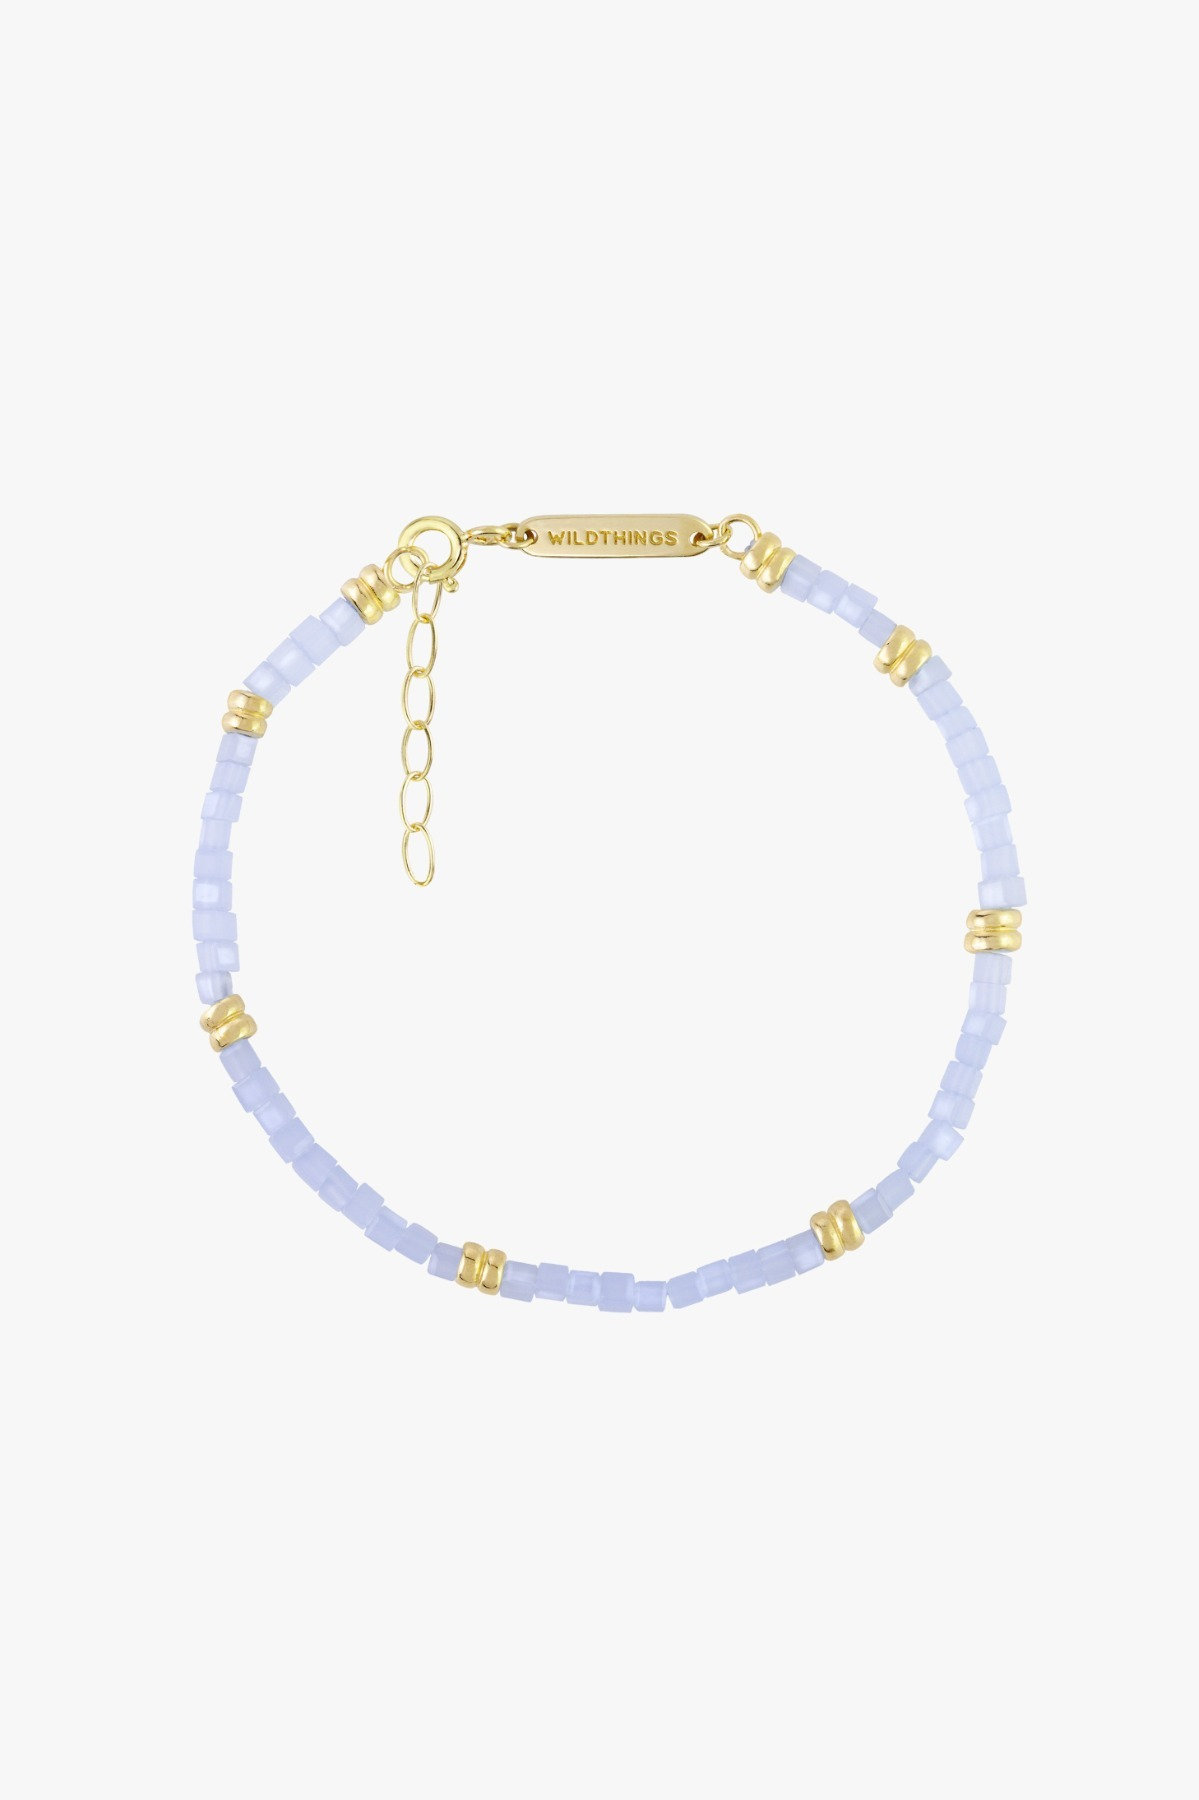 wildthings collectables Blue sky bracelet gold